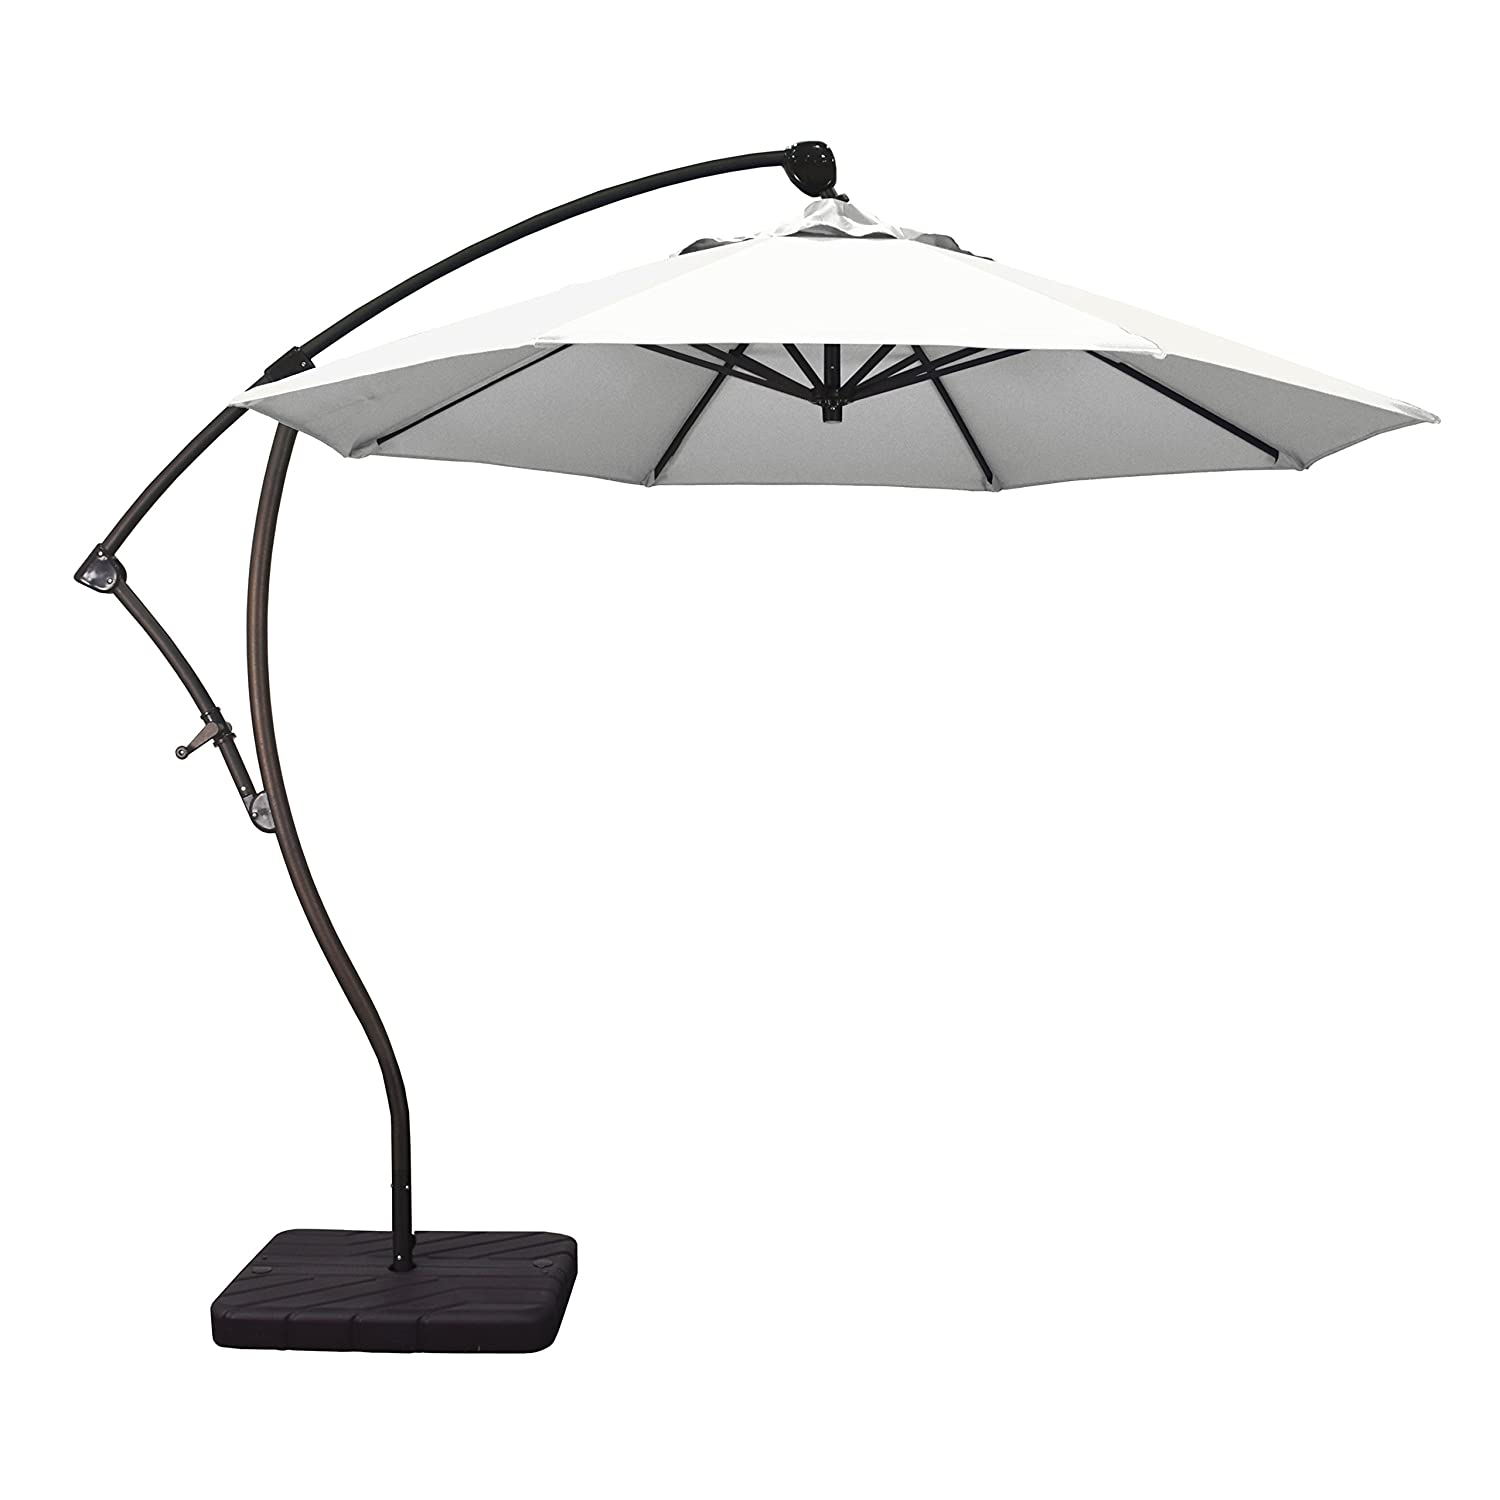 Phat Tommy 9 Ft Cantilever Offset Aluminum Market Patio Umbrella with Tilt for Shade and Outdoor Living